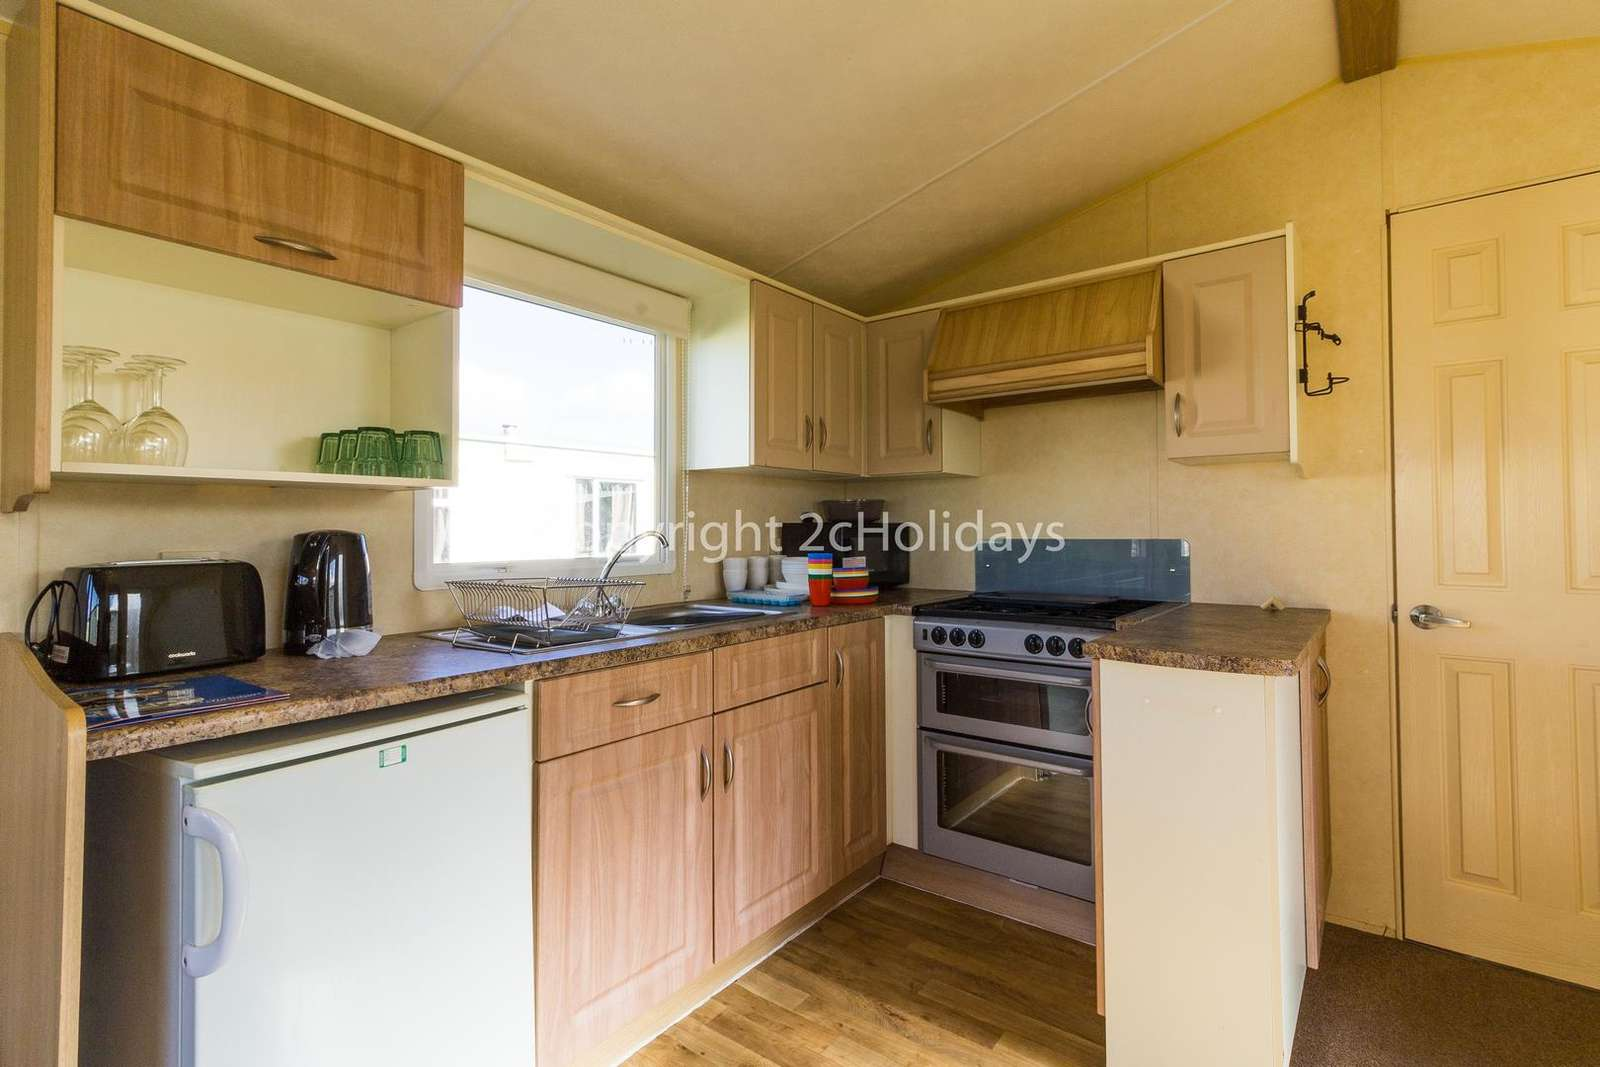 Fully equipped kitchen, ideal for self-catering holidays